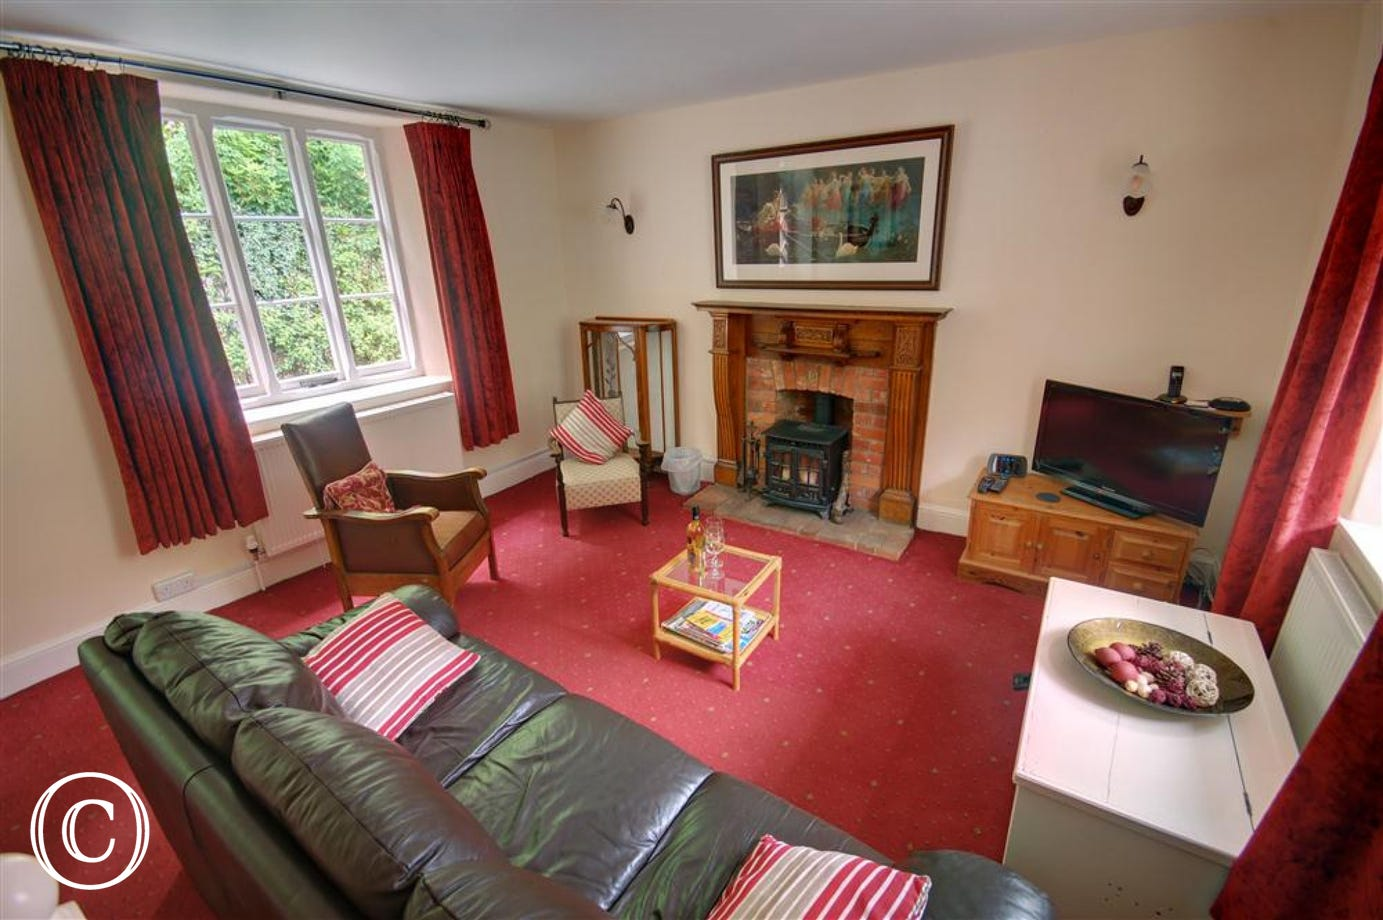 Spacious sitting room with log burner in feature fireplace